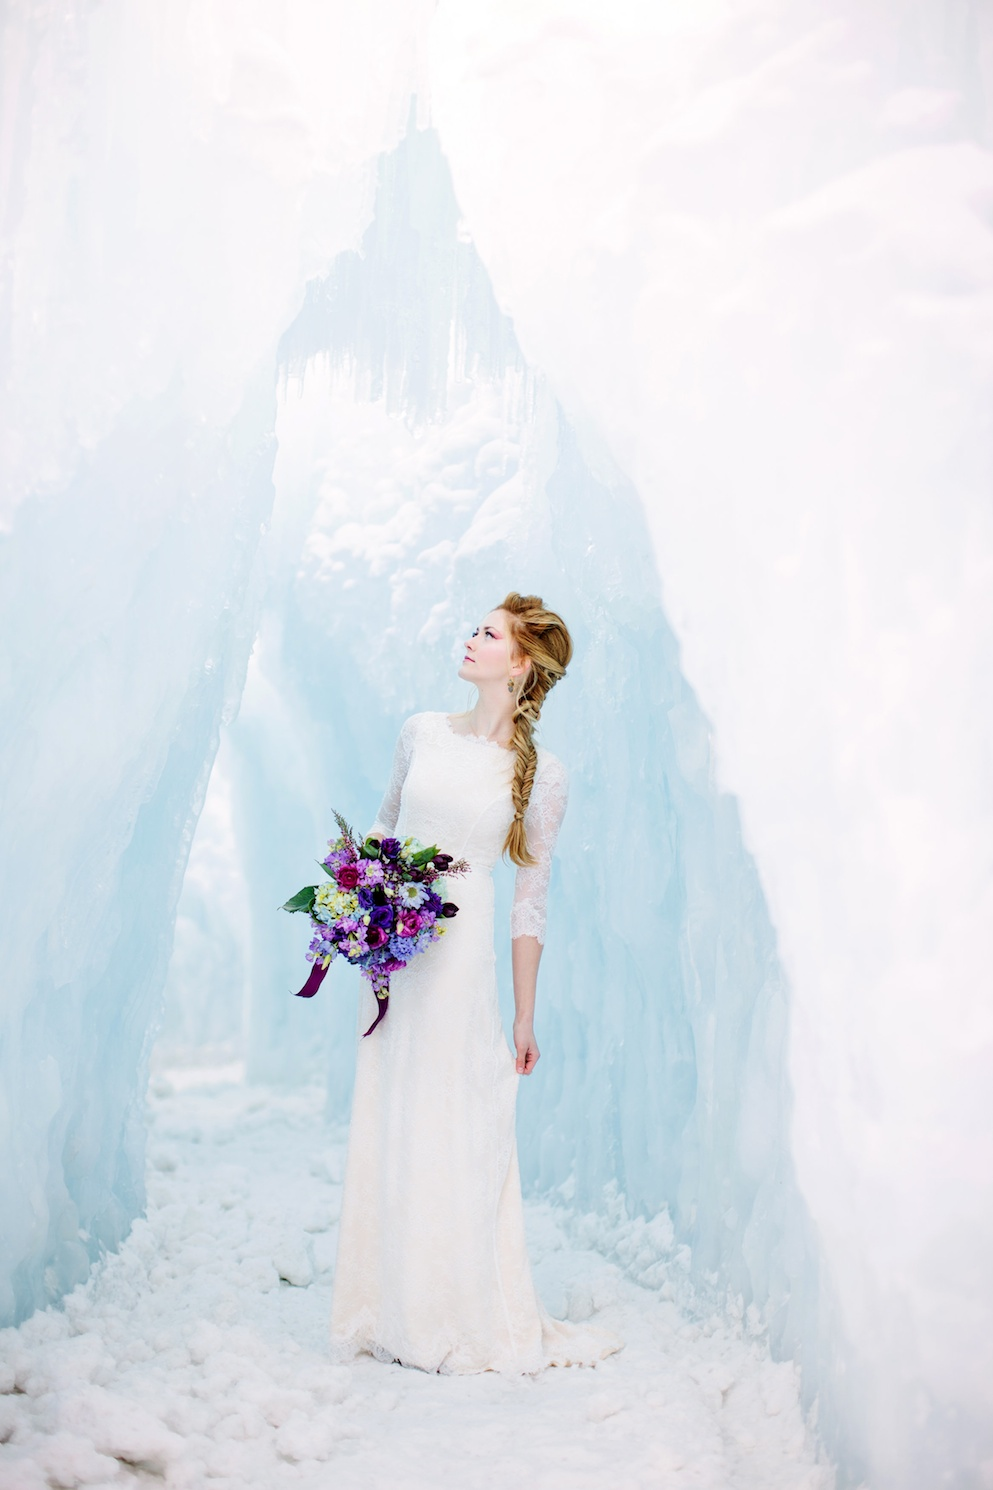 Disney's Frozen Inspired Wedding Shoot midway ice castles calie rose wedding flowers utah Frozen Wedding Ideas